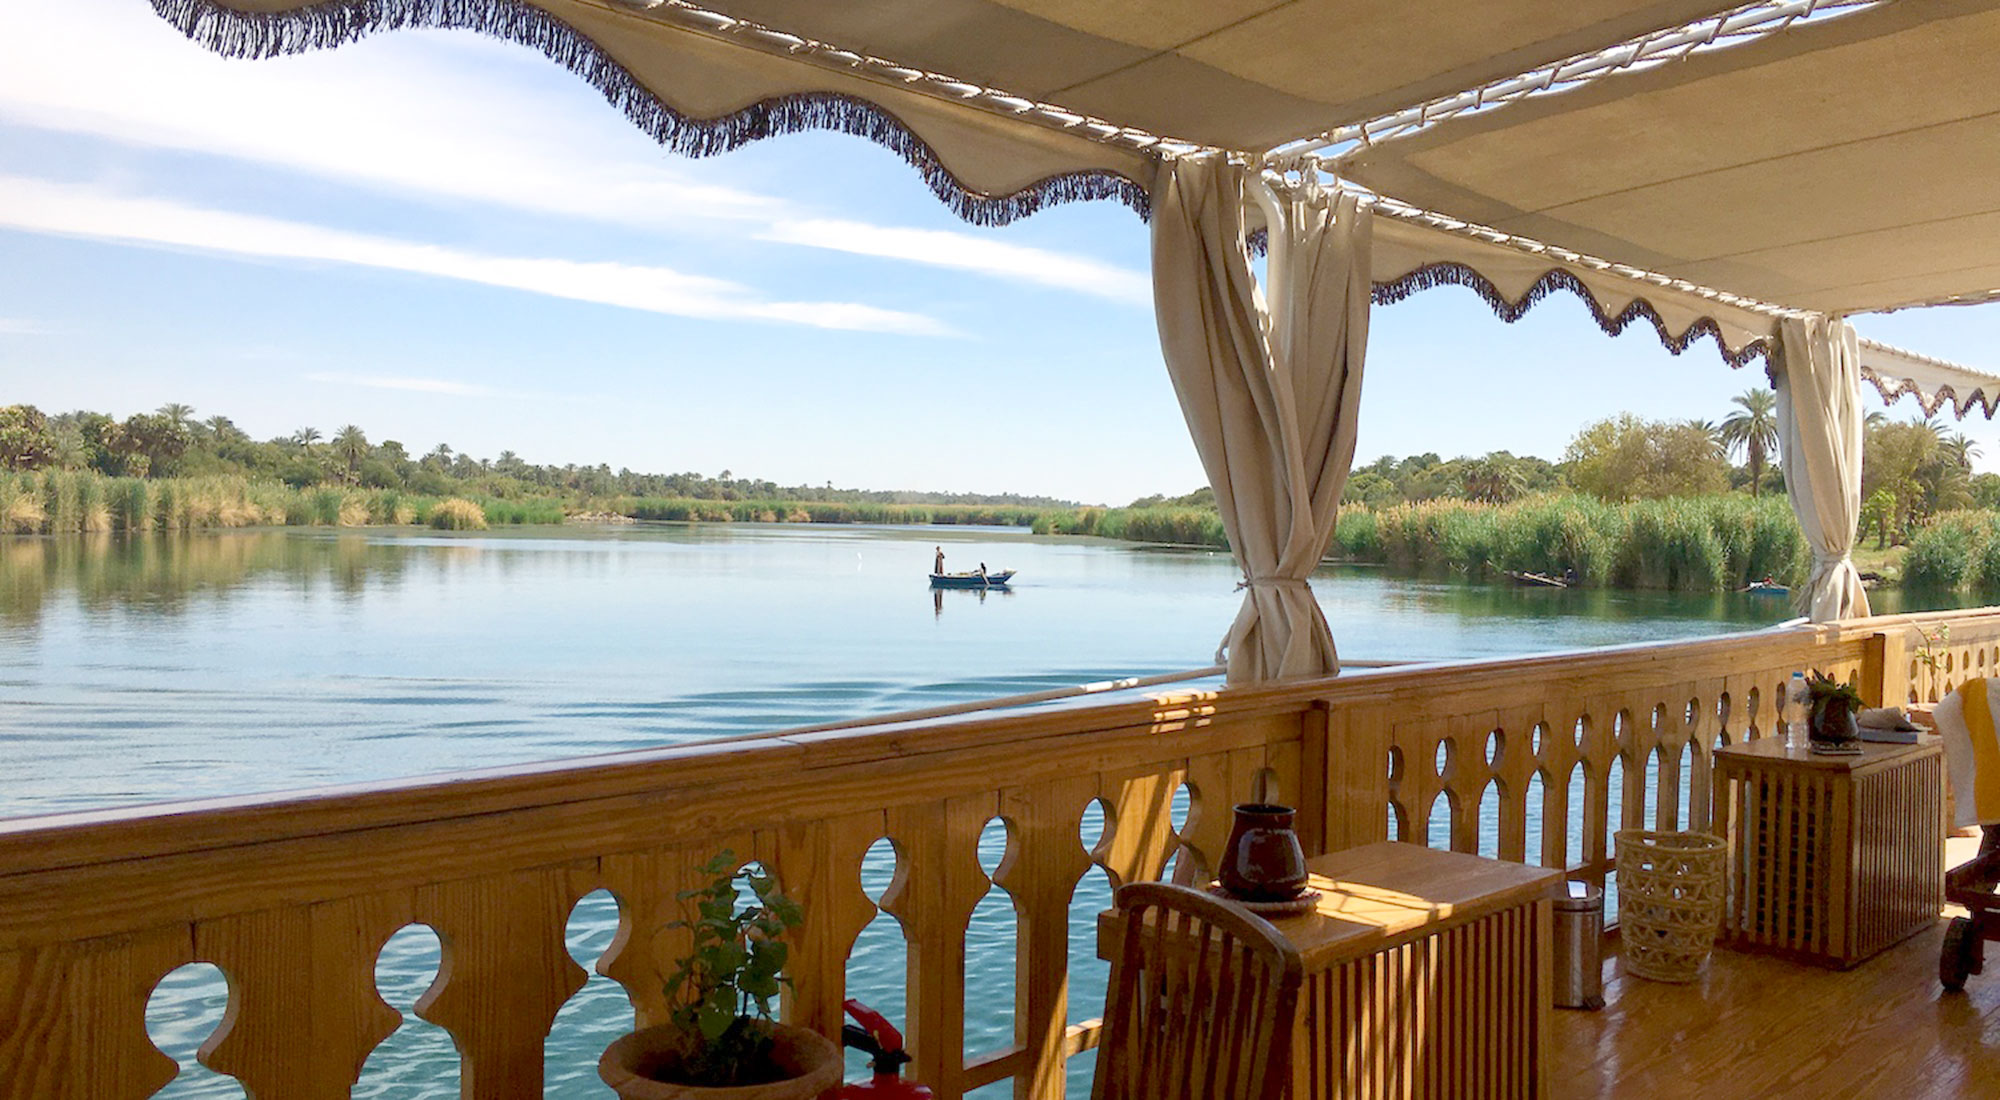 The sun deck offers impressive panoramic views of the Nile